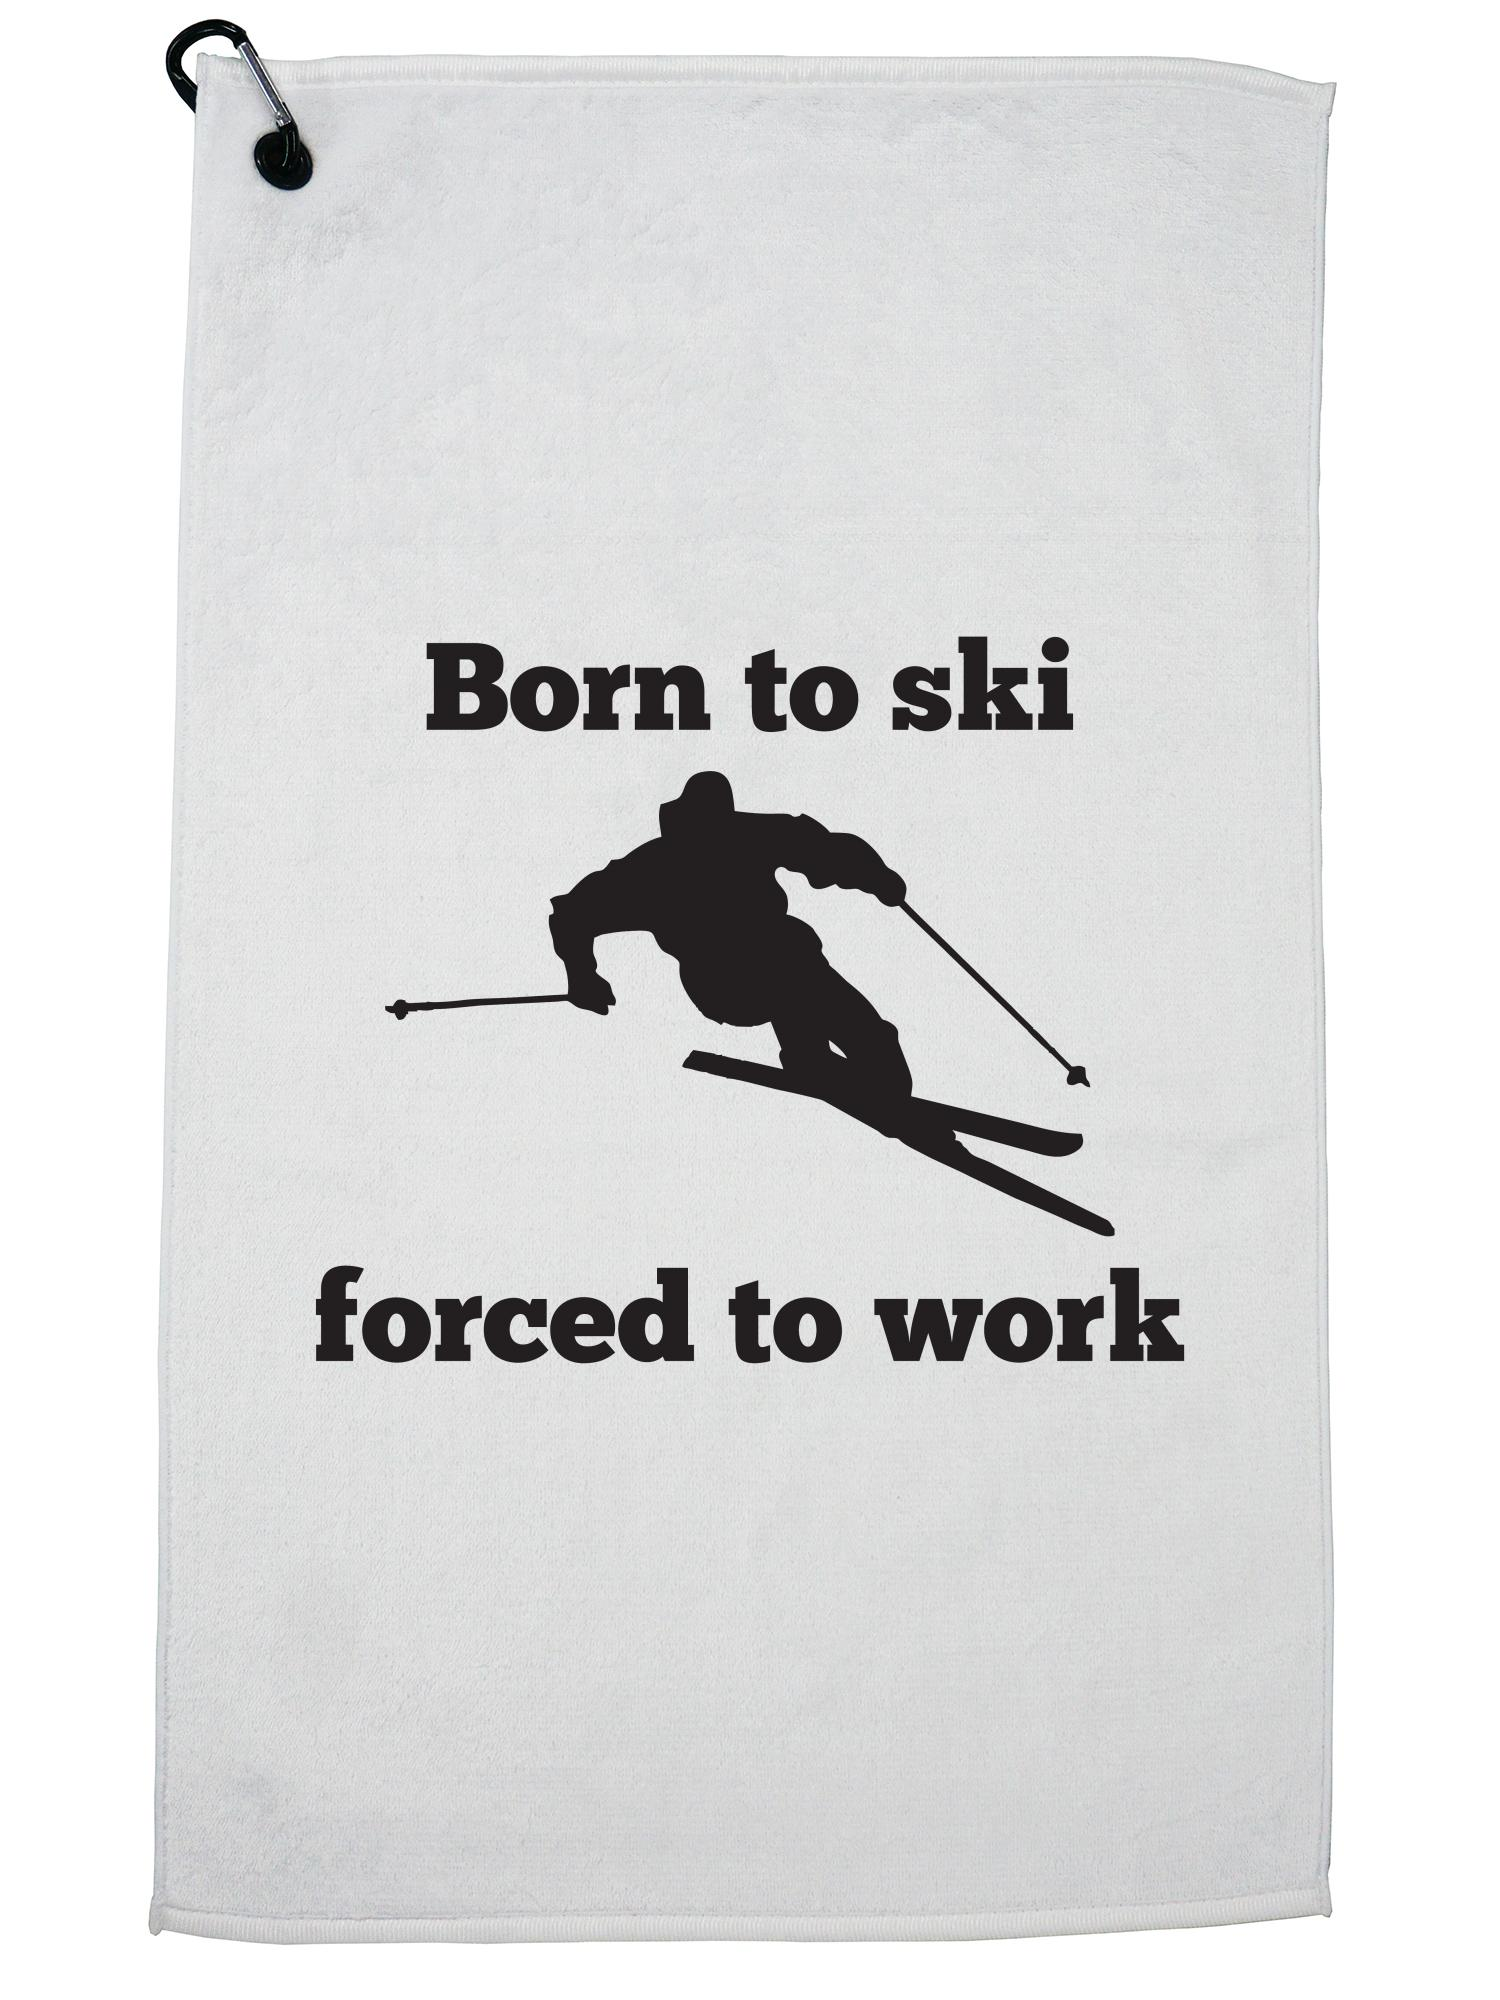 Born To Ski Forced To Work Skiing Graphic Golf Towel with Carabiner Clip by Hollywood Thread